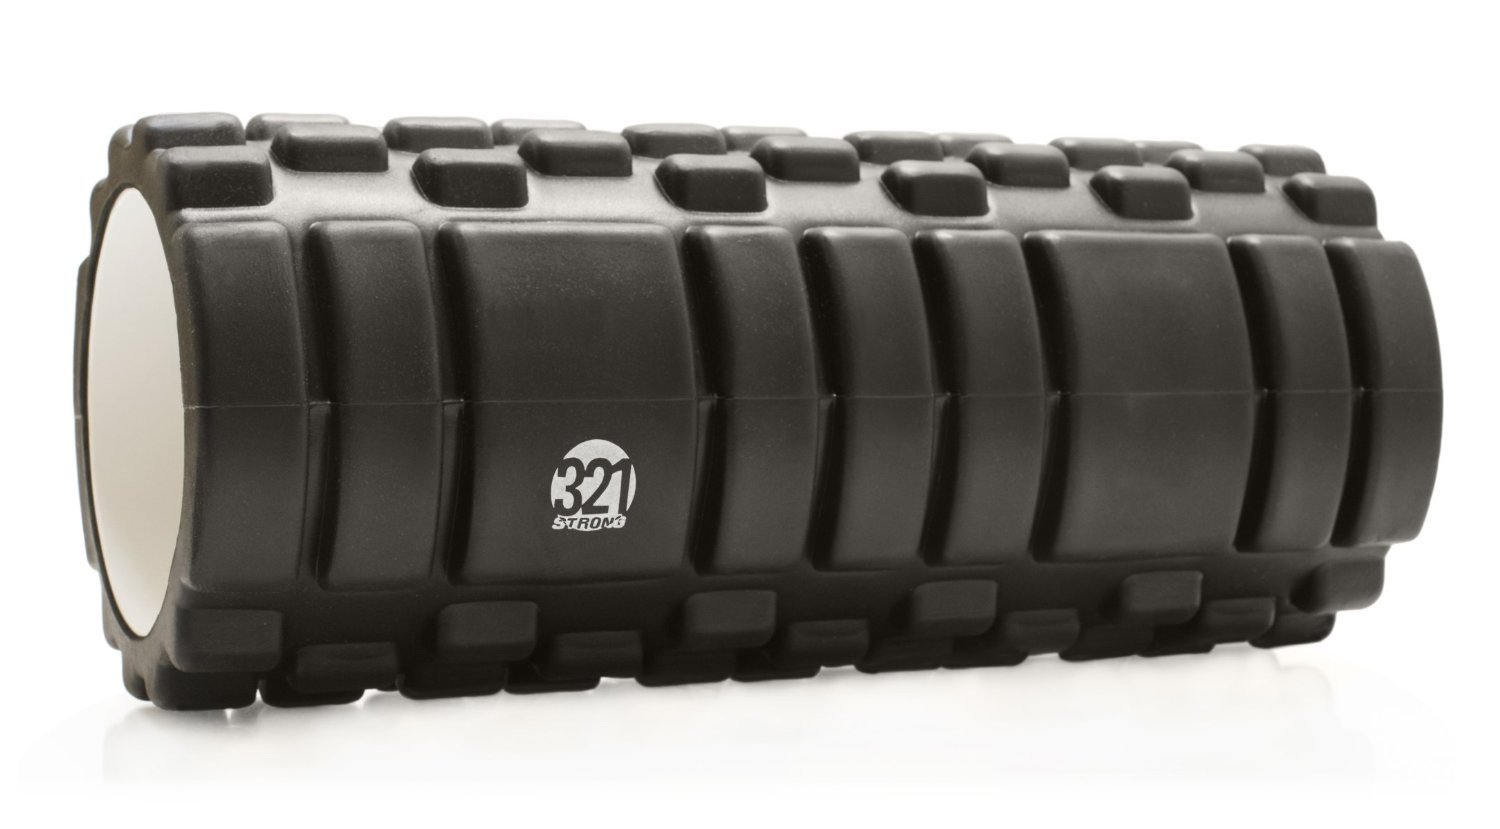 321 STRONG Foam Roller – Medium Density Deep Tissue Massager for Muscle Massage and Myofascial Trigger Point Release, with 4K eBook